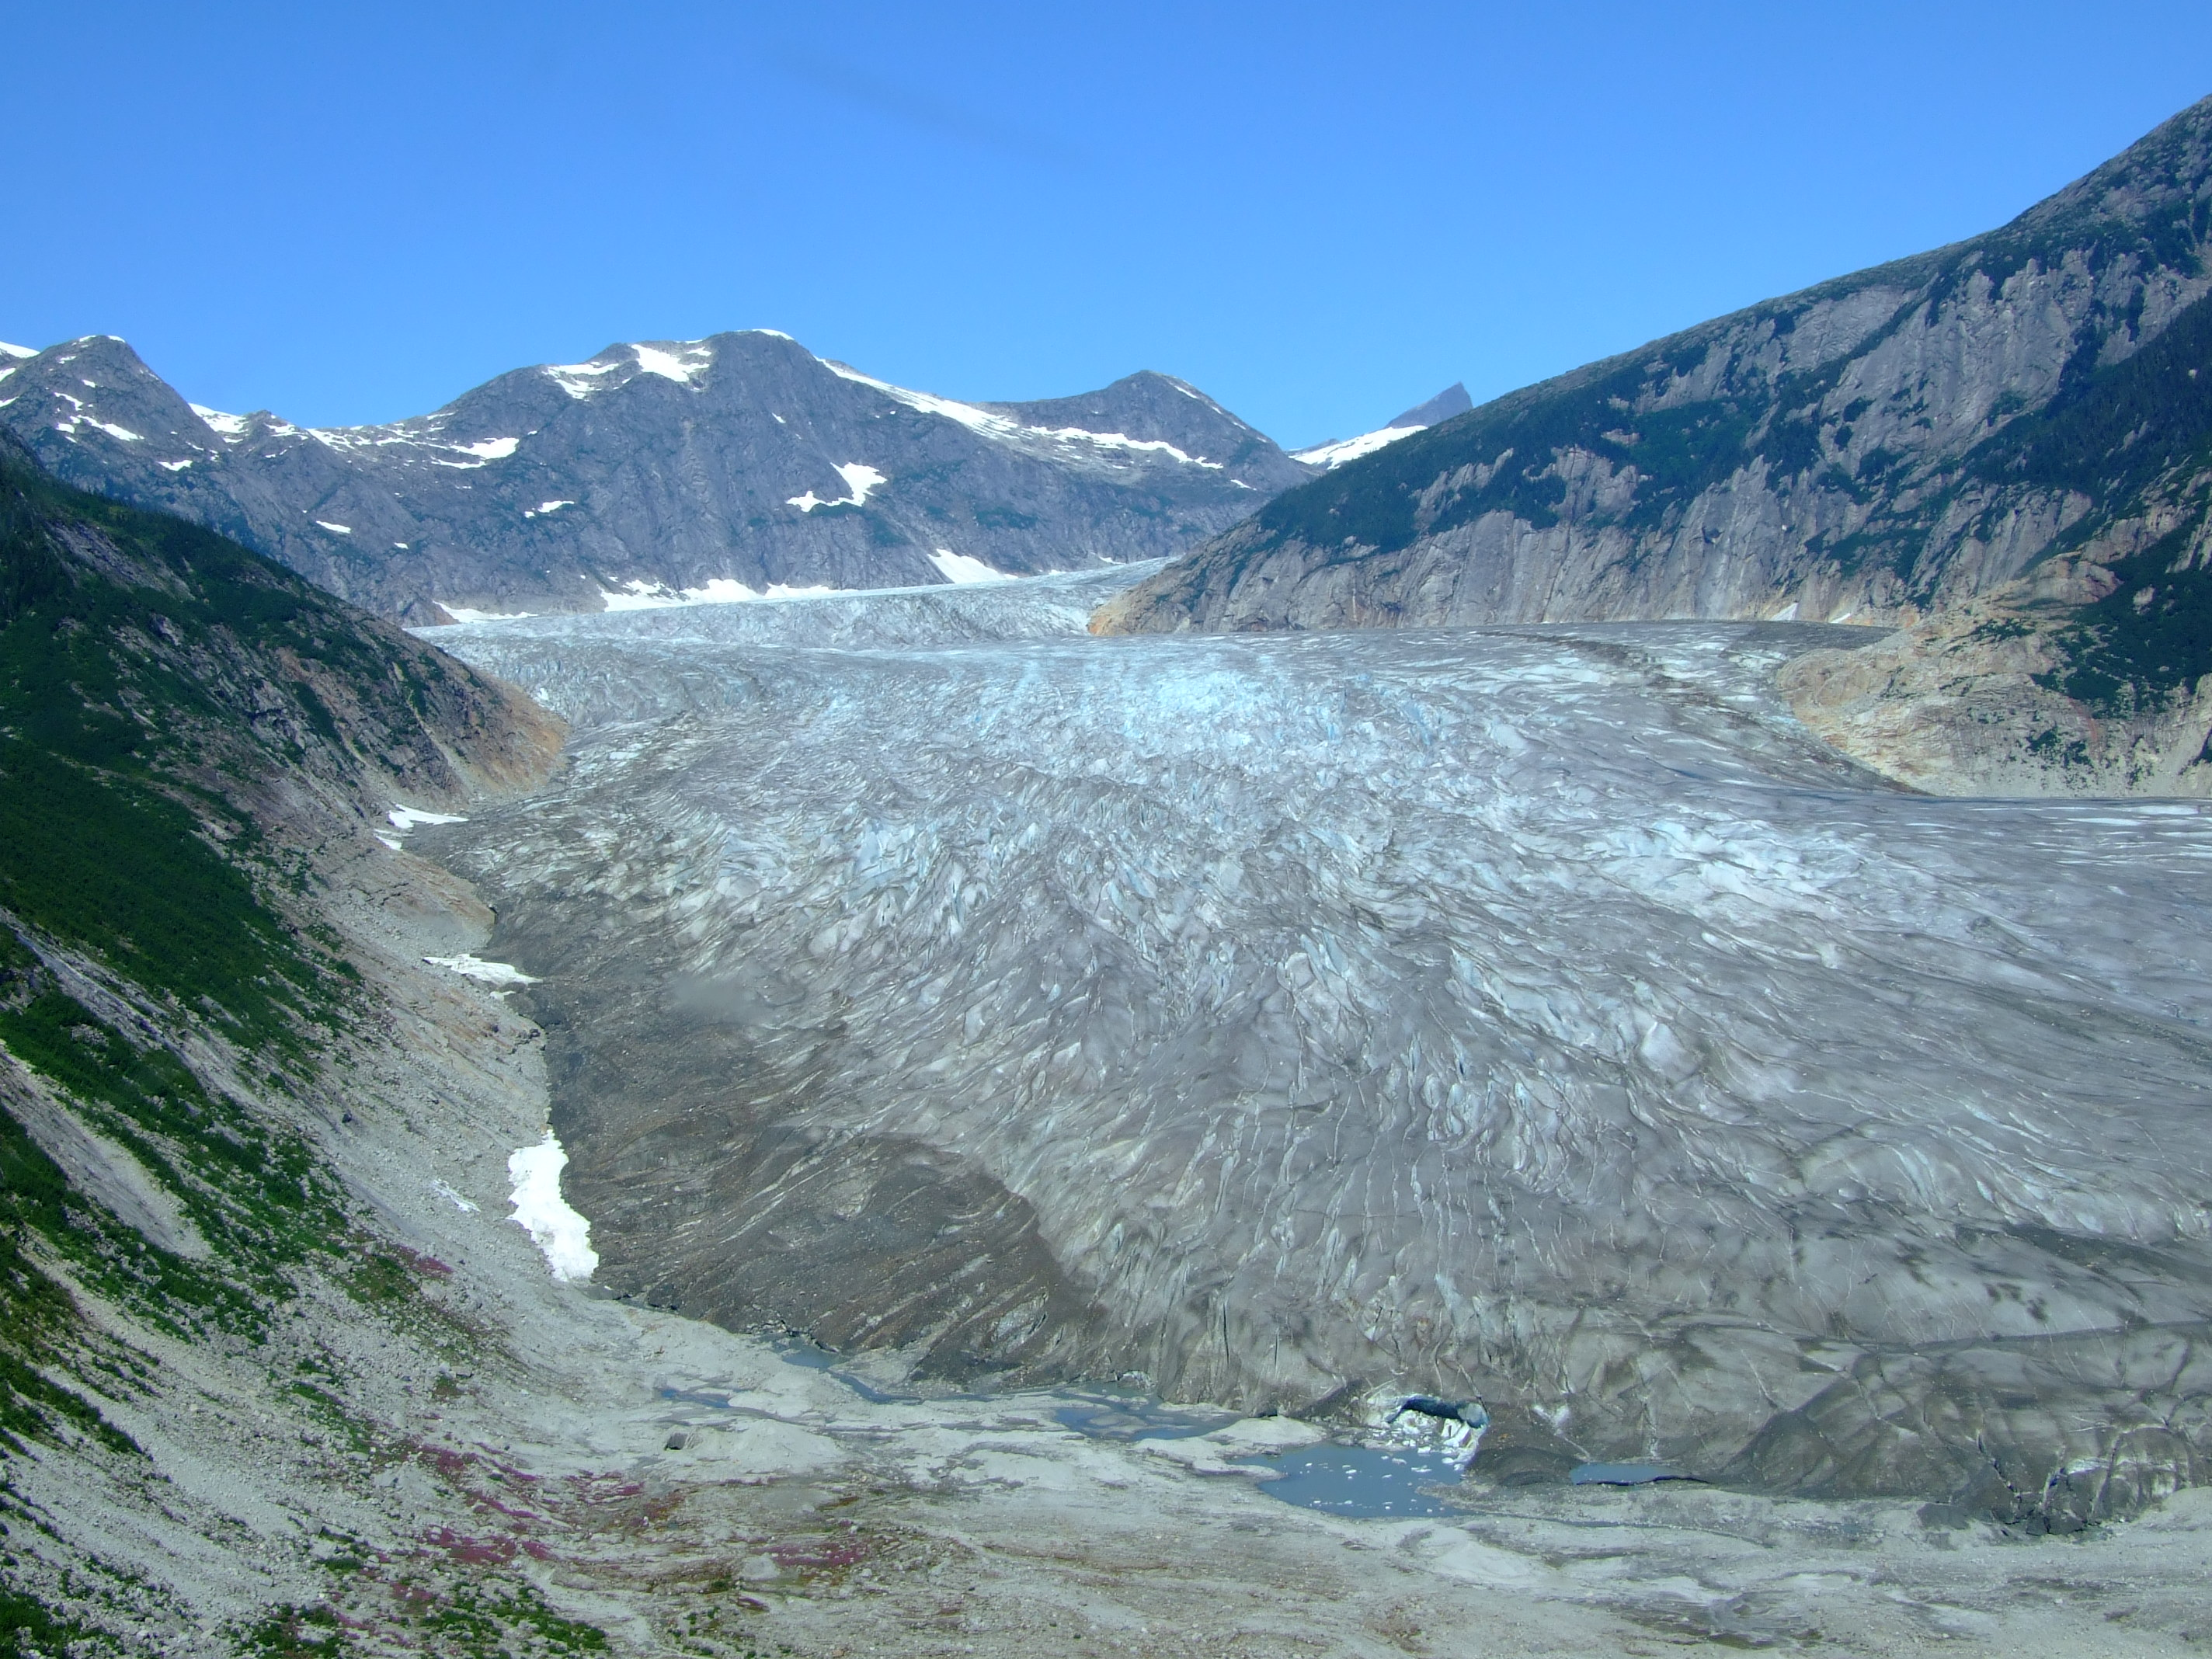 Note the trim line evidencing the rapidly receding size of the Norris Glacier.